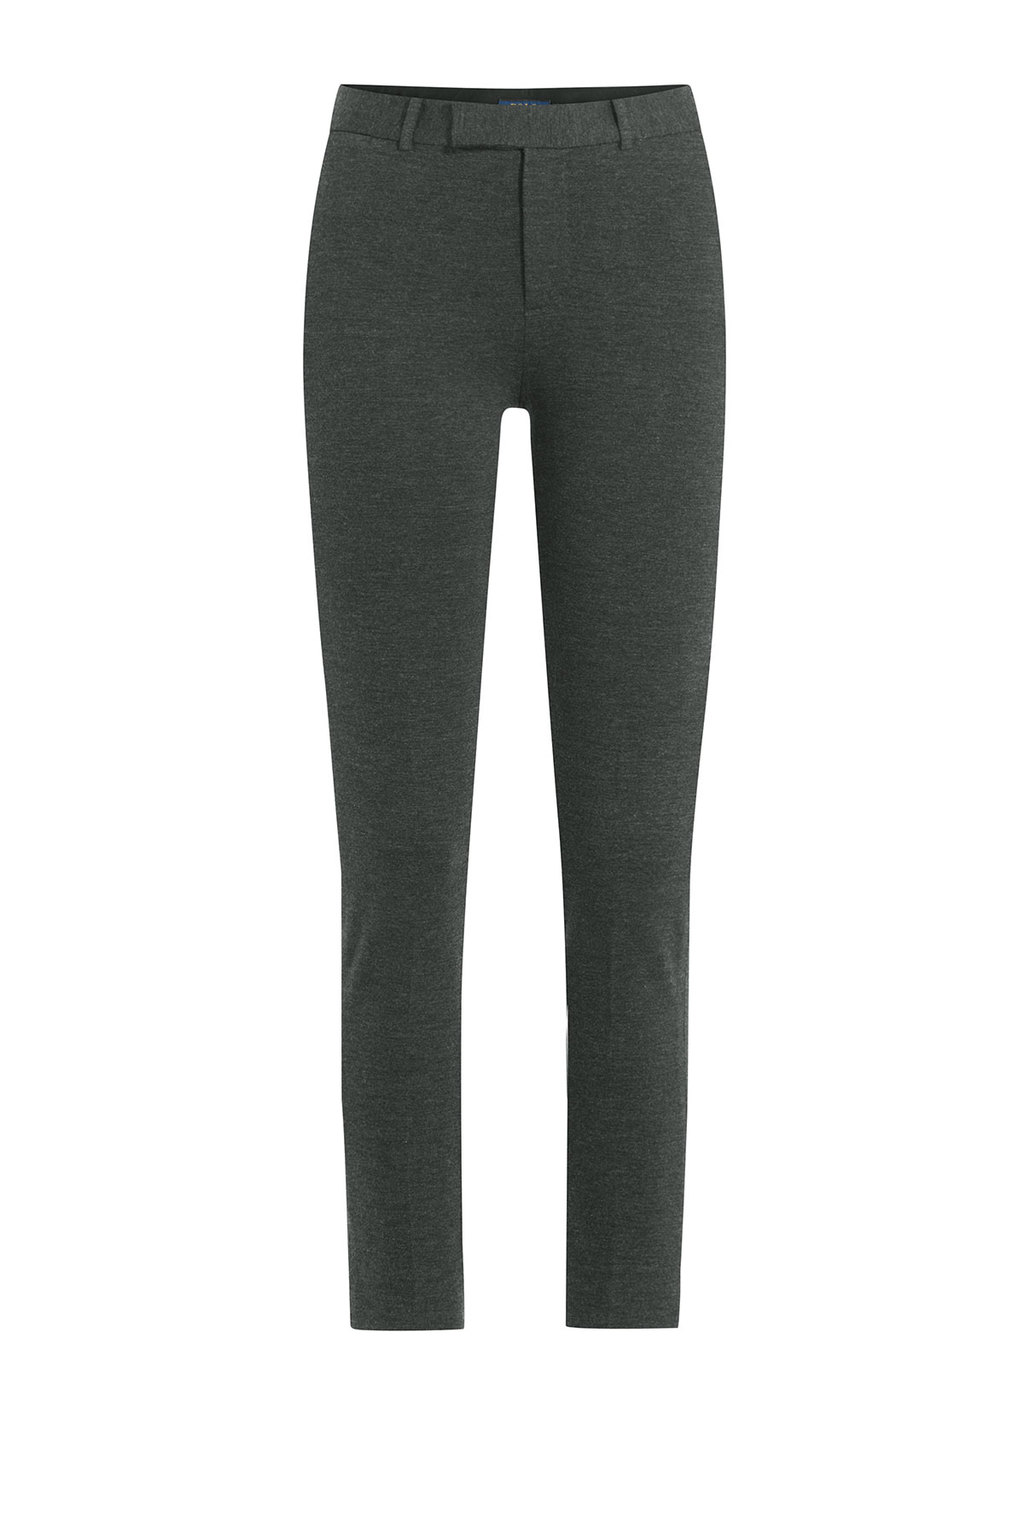 Cropped Slim Pants Black - length: standard; pattern: plain; waist: mid/regular rise; predominant colour: charcoal; occasions: work; fibres: viscose/rayon - stretch; fit: slim leg; pattern type: fabric; texture group: woven light midweight; style: standard; wardrobe: basic; season: a/w 2016